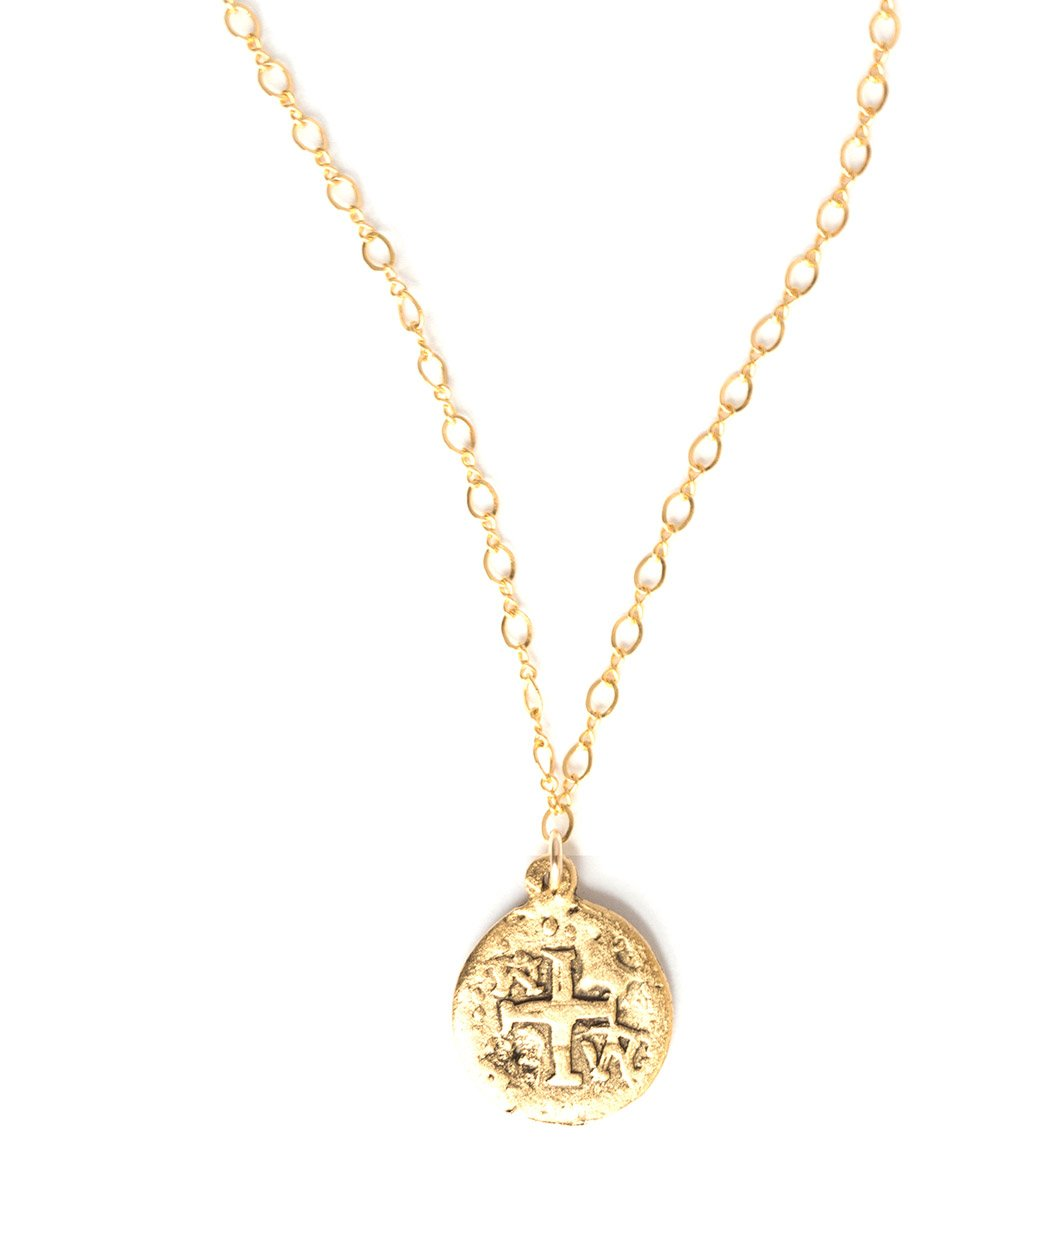 N Doubleloon Coin Necklace 2